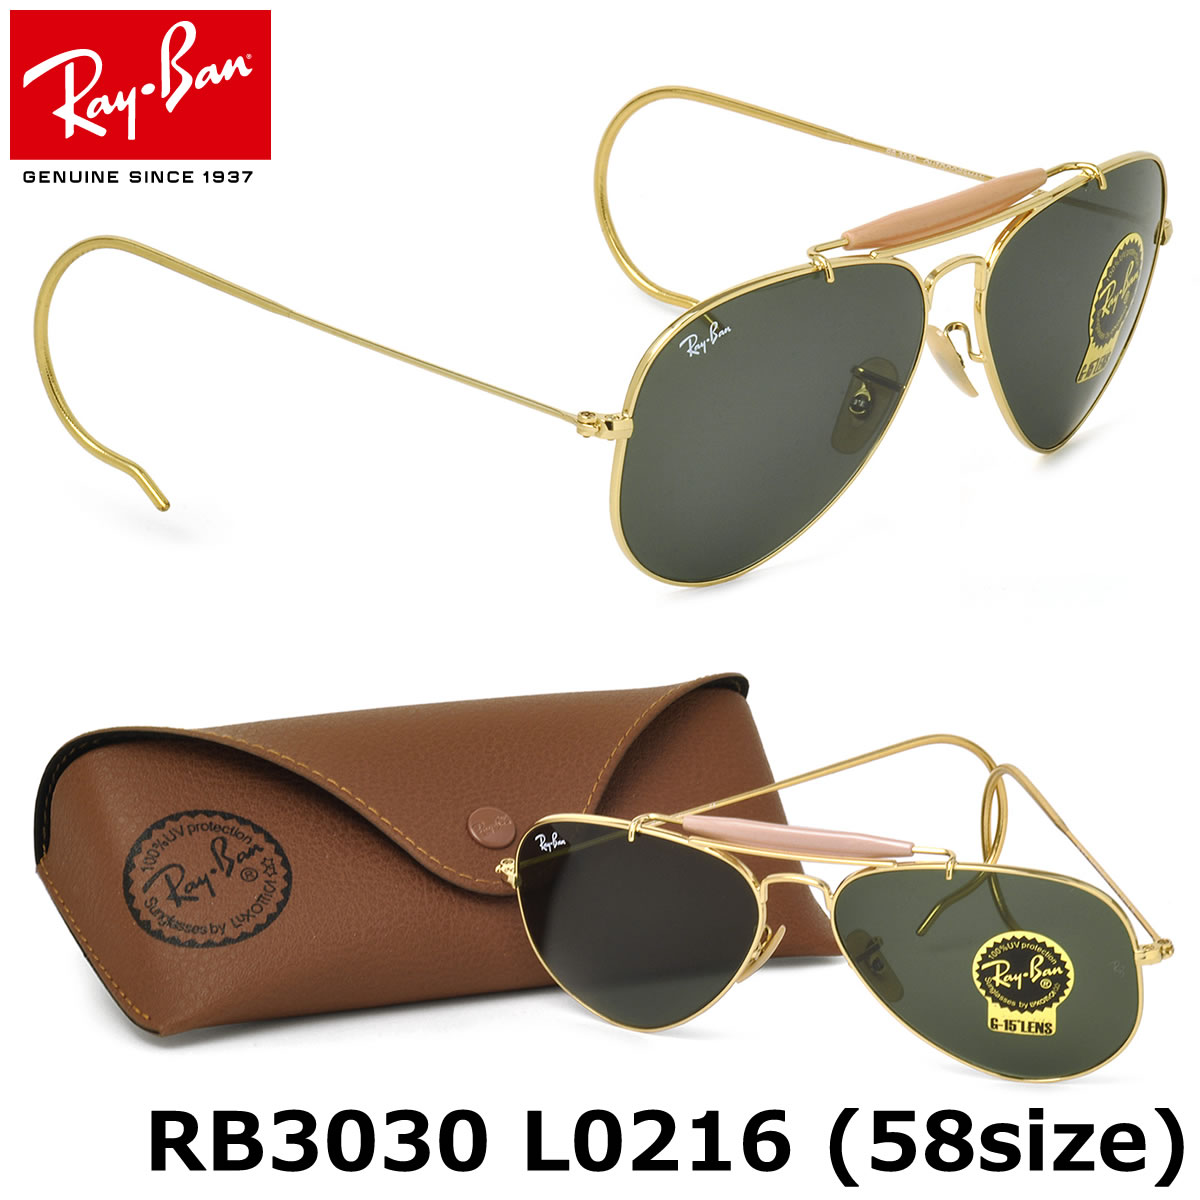 f4987f5b0 In RB3030(Outdoorsman), as for this, a bar and a cable temple of the  impressive stopping up the flow of sweat are Ray-Ban with the lens shape of  the unique ...